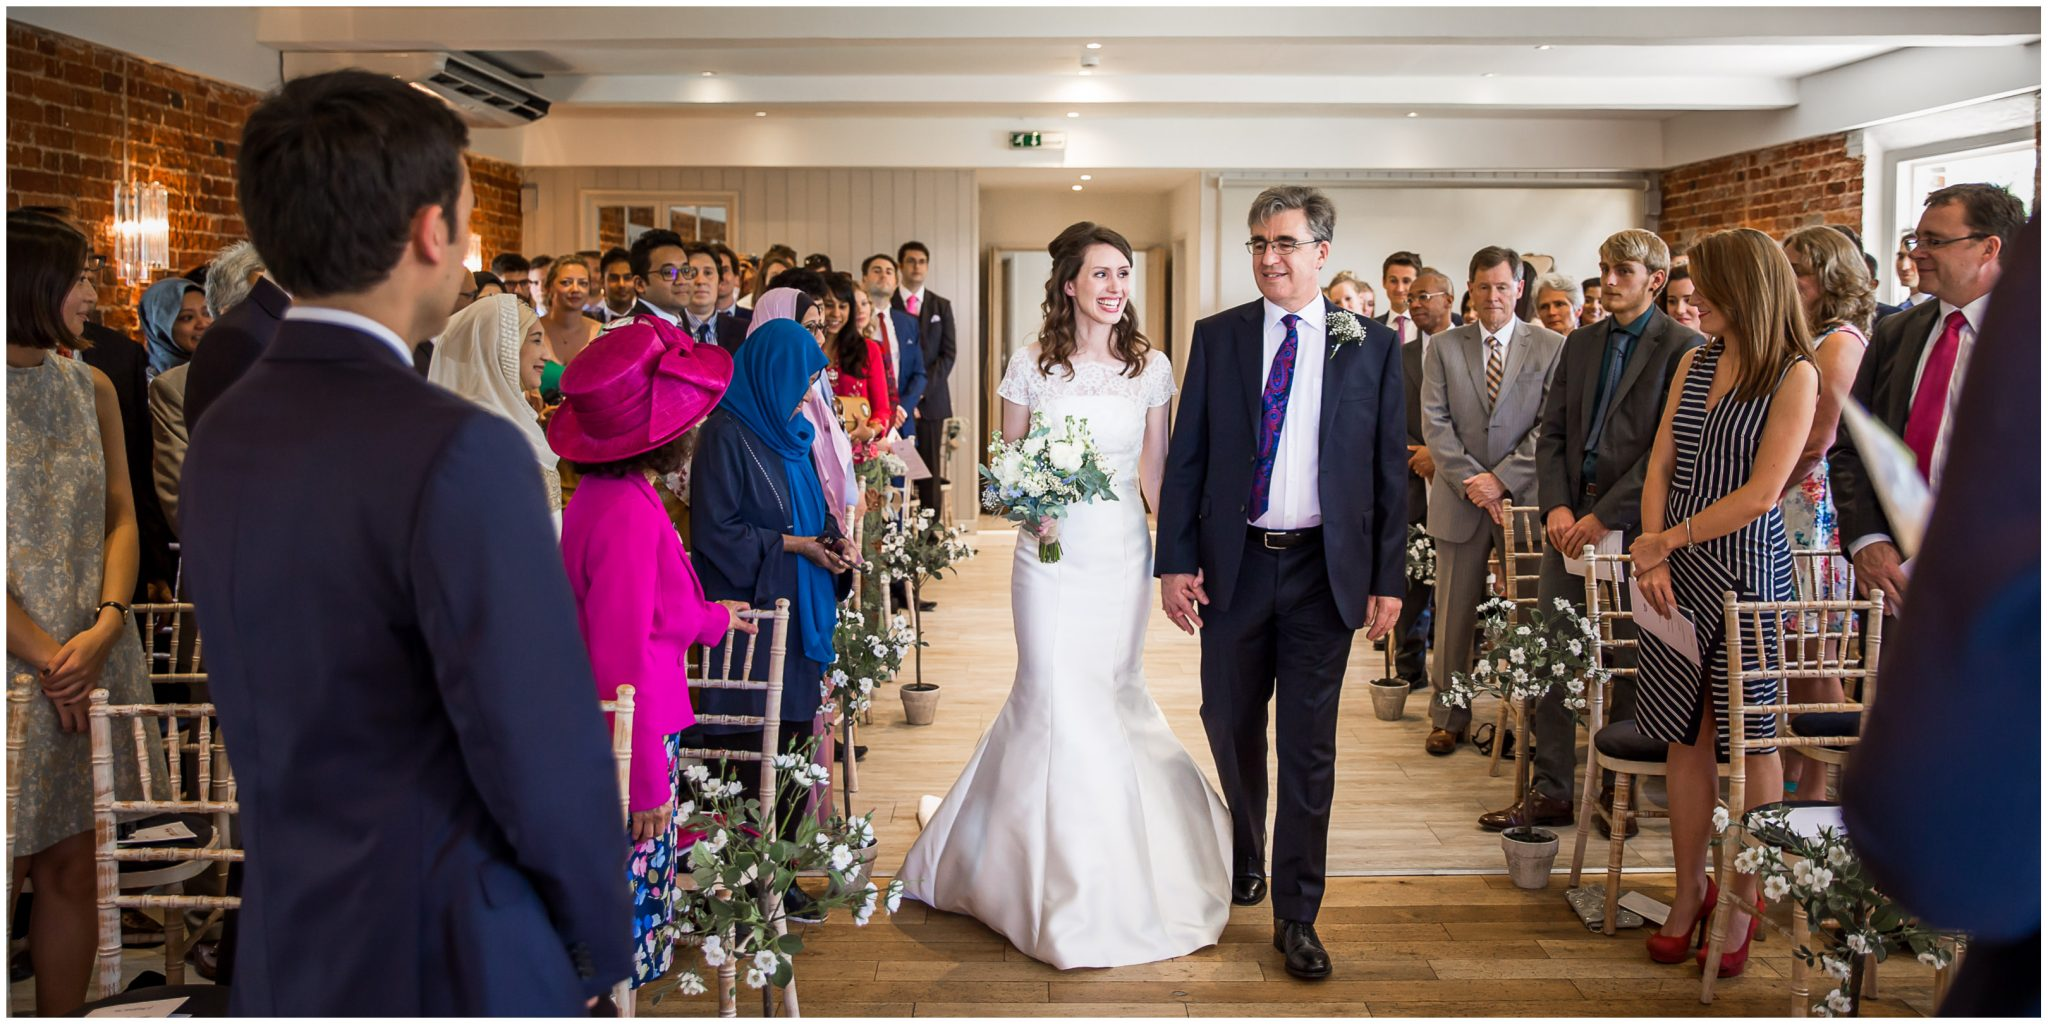 Sopley Mill Summer wedding bride walking down aisle with father